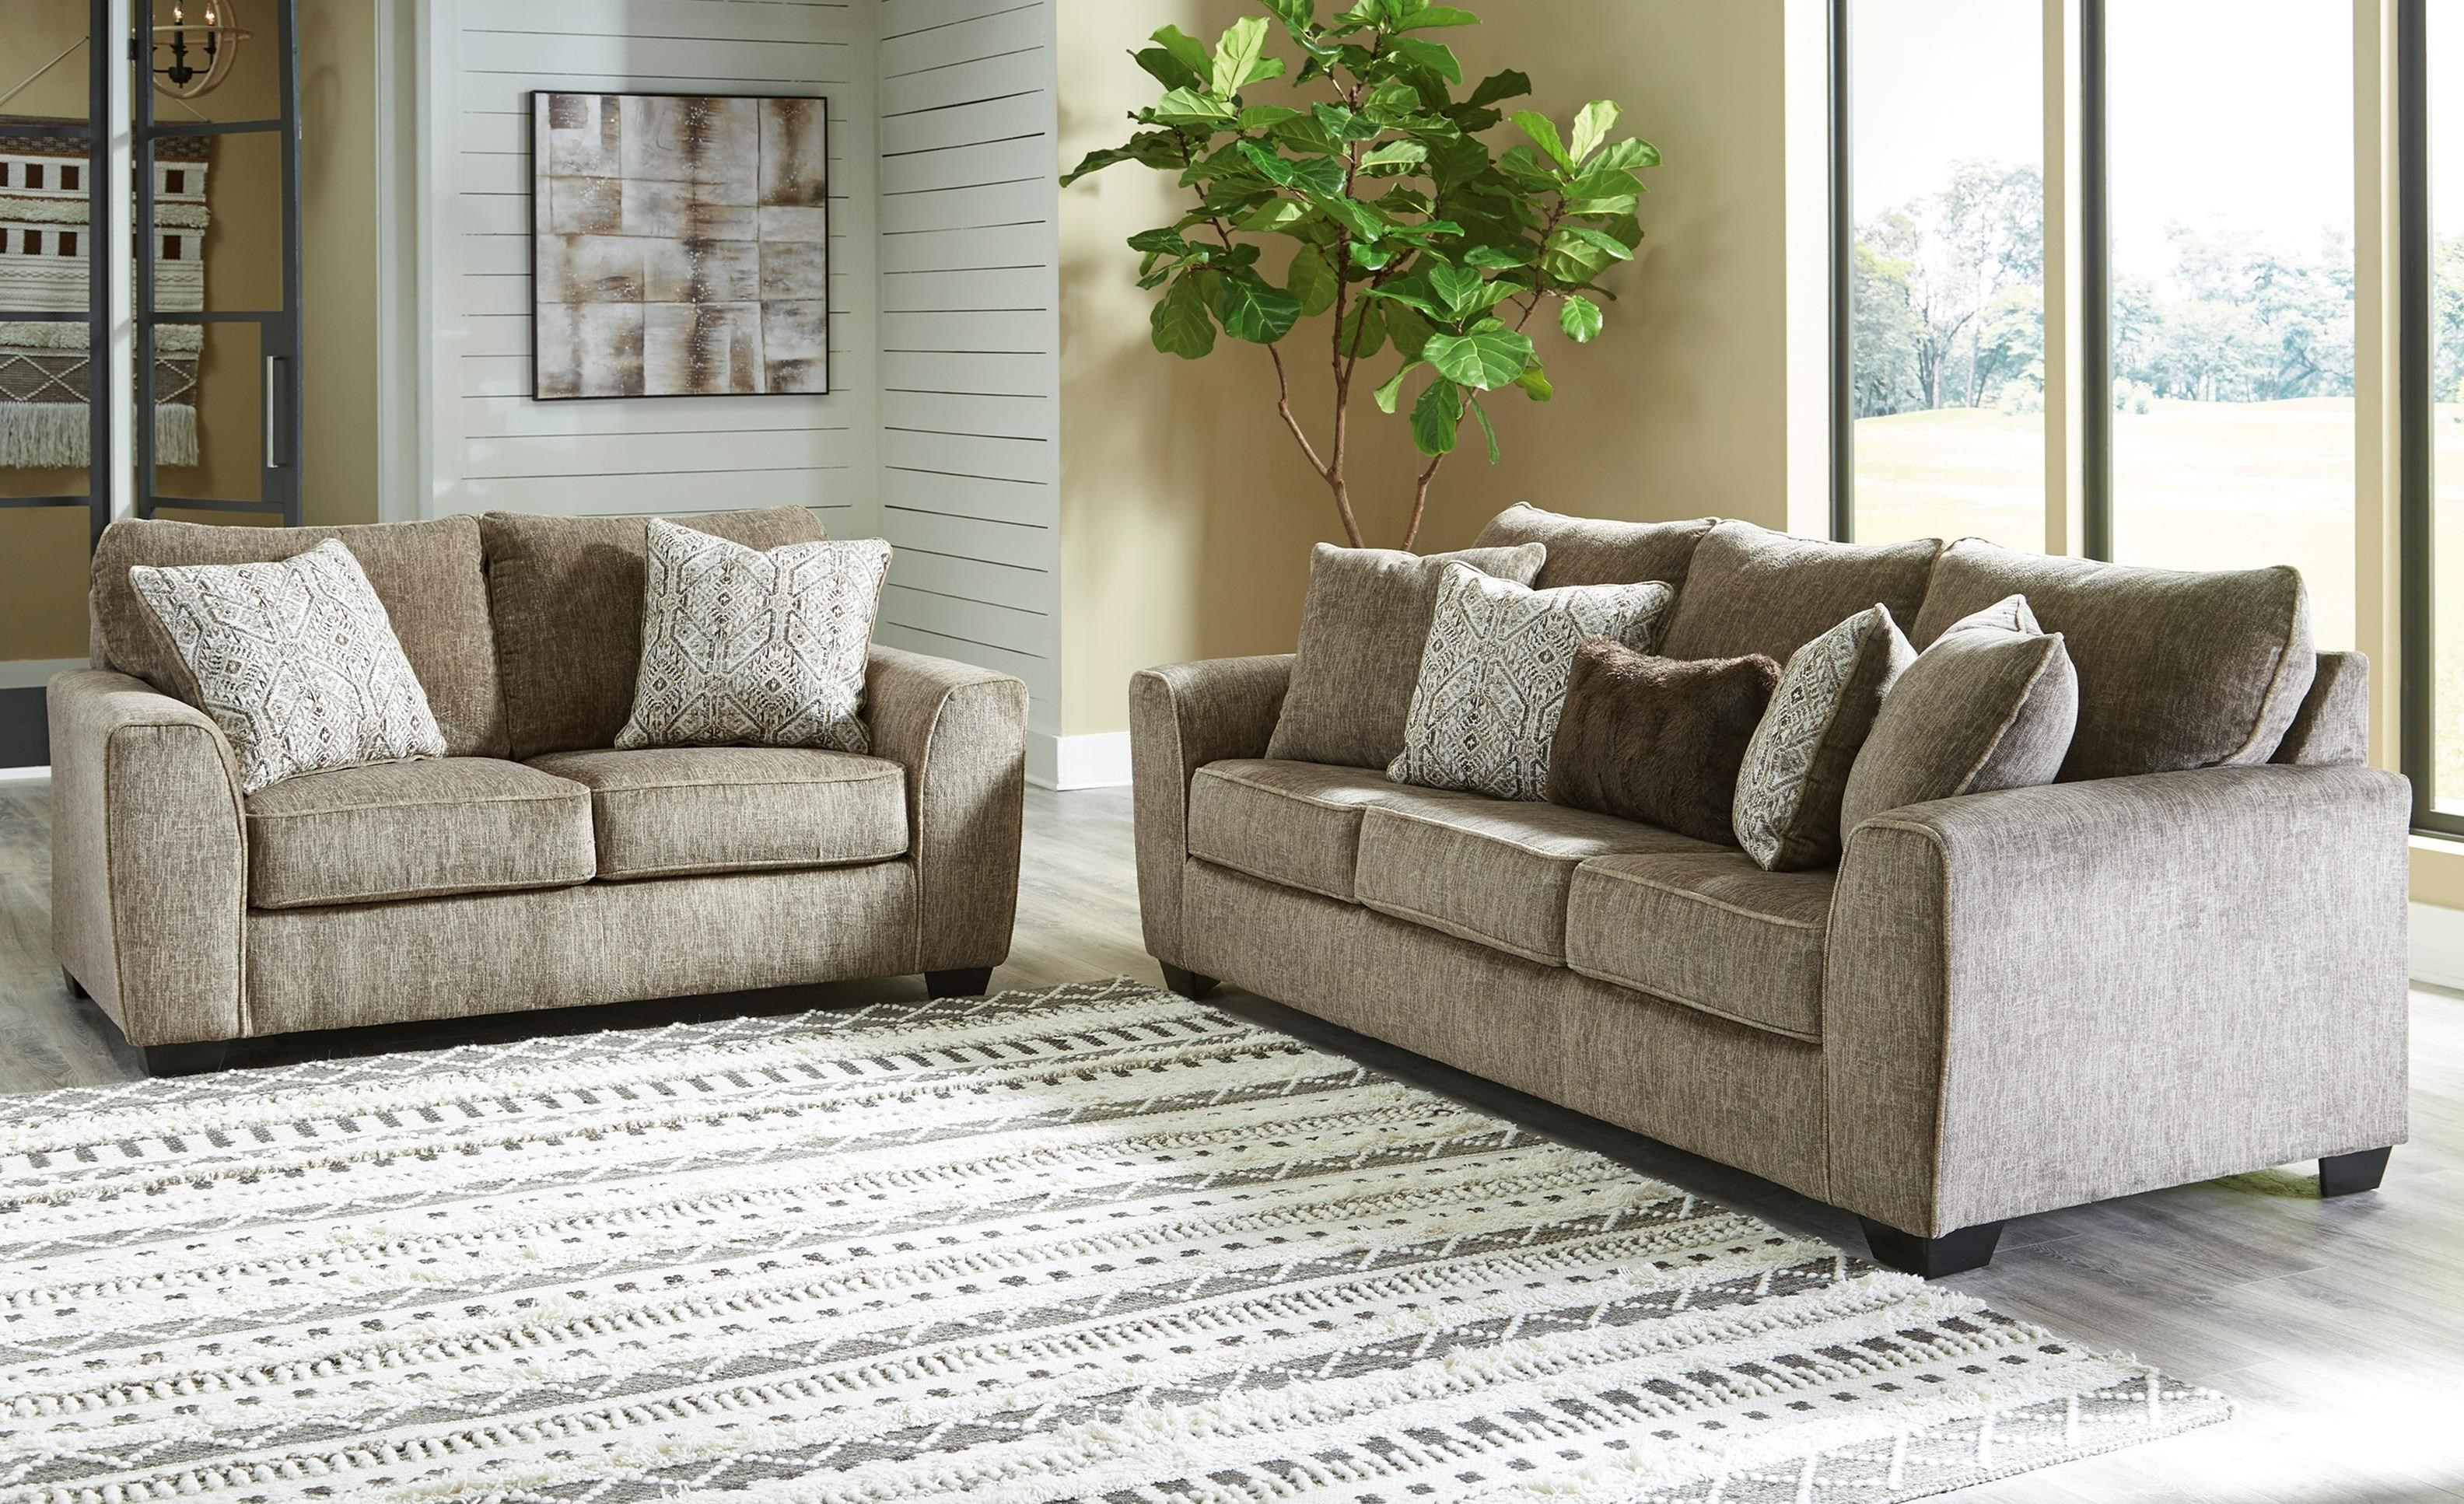 Olin Living Room Group by Benchcraft at Value City Furniture